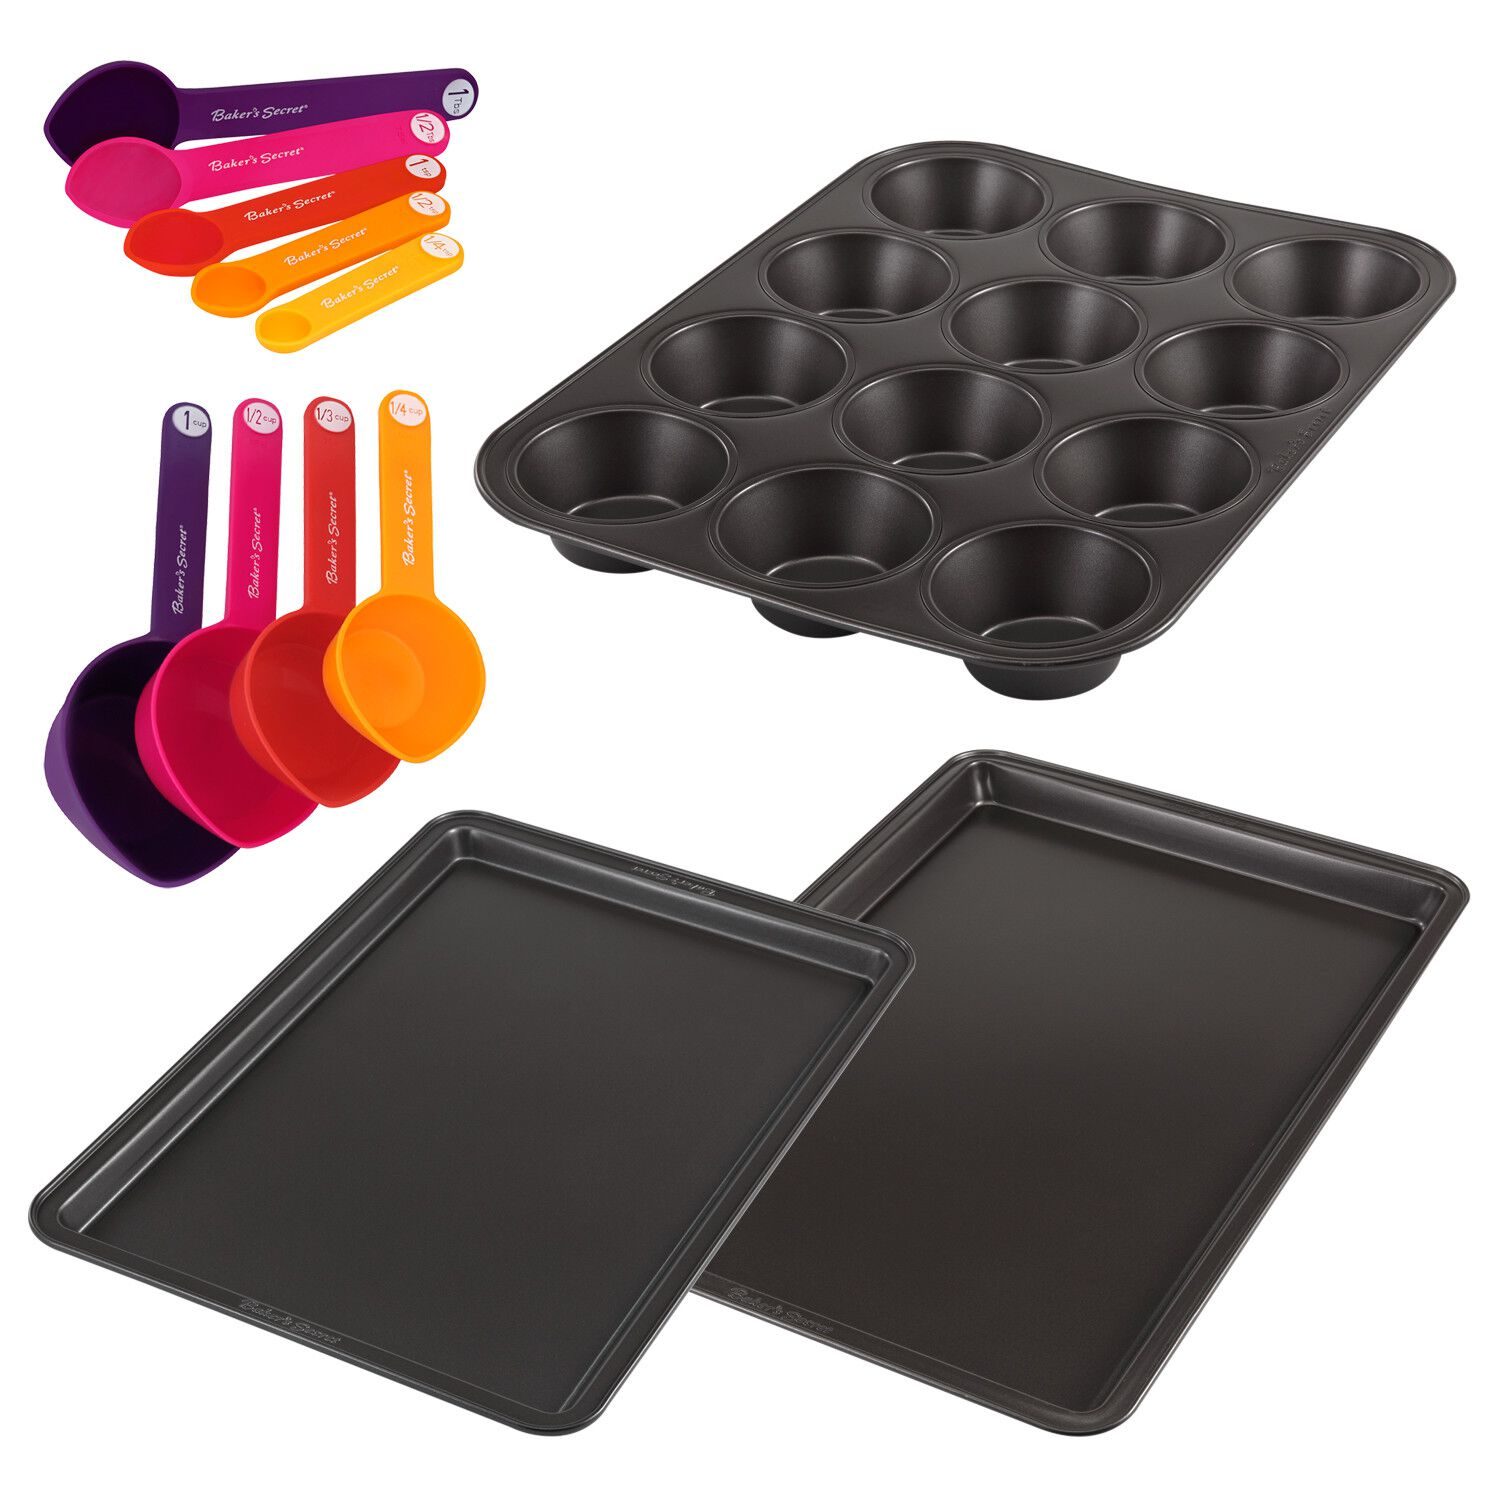 Bakeware and Cooking Sets